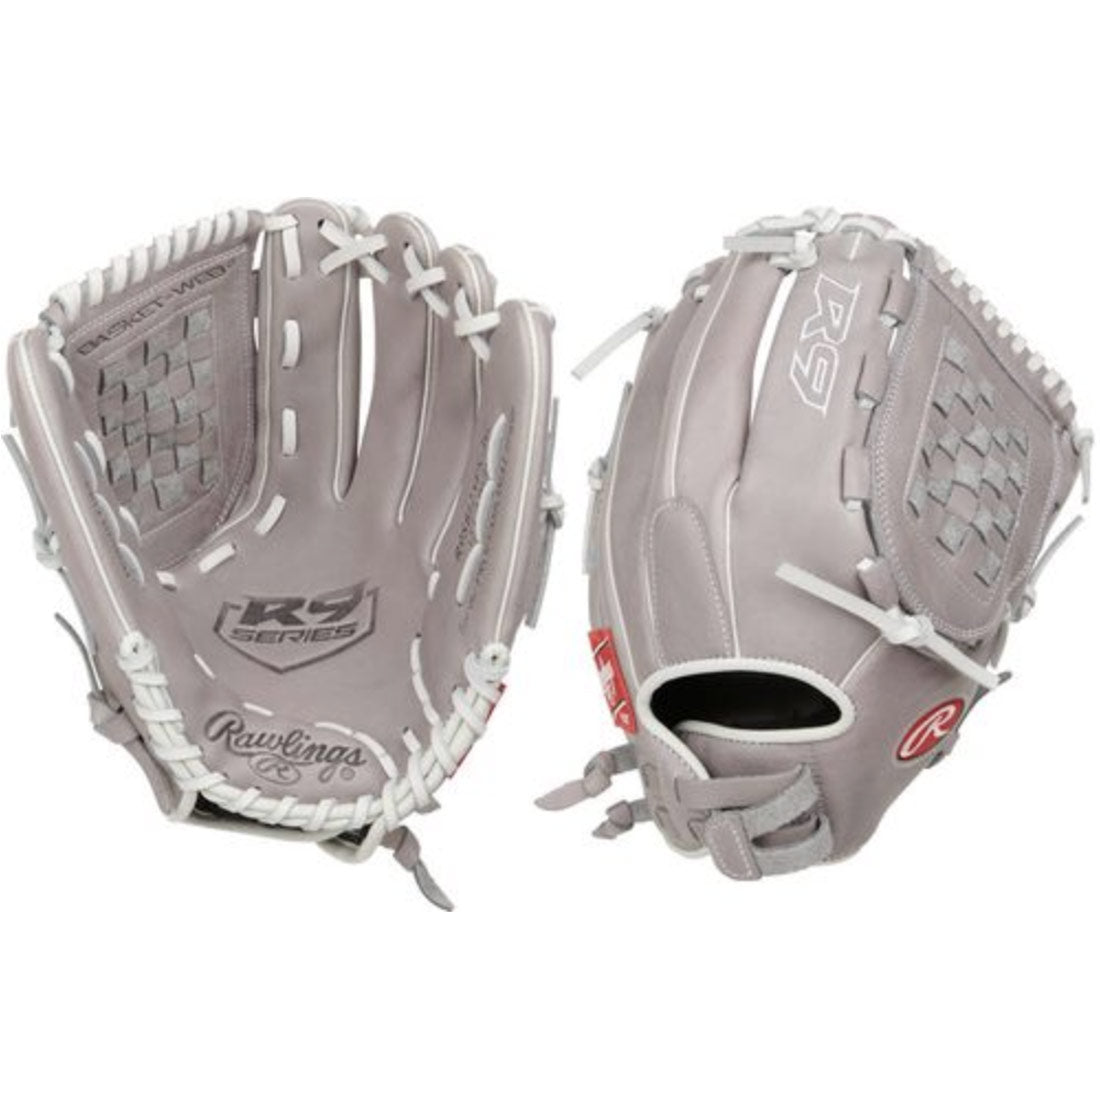 GANT DE SOFTBALL R9 SERIES R9SB125FS-3G 12.5''